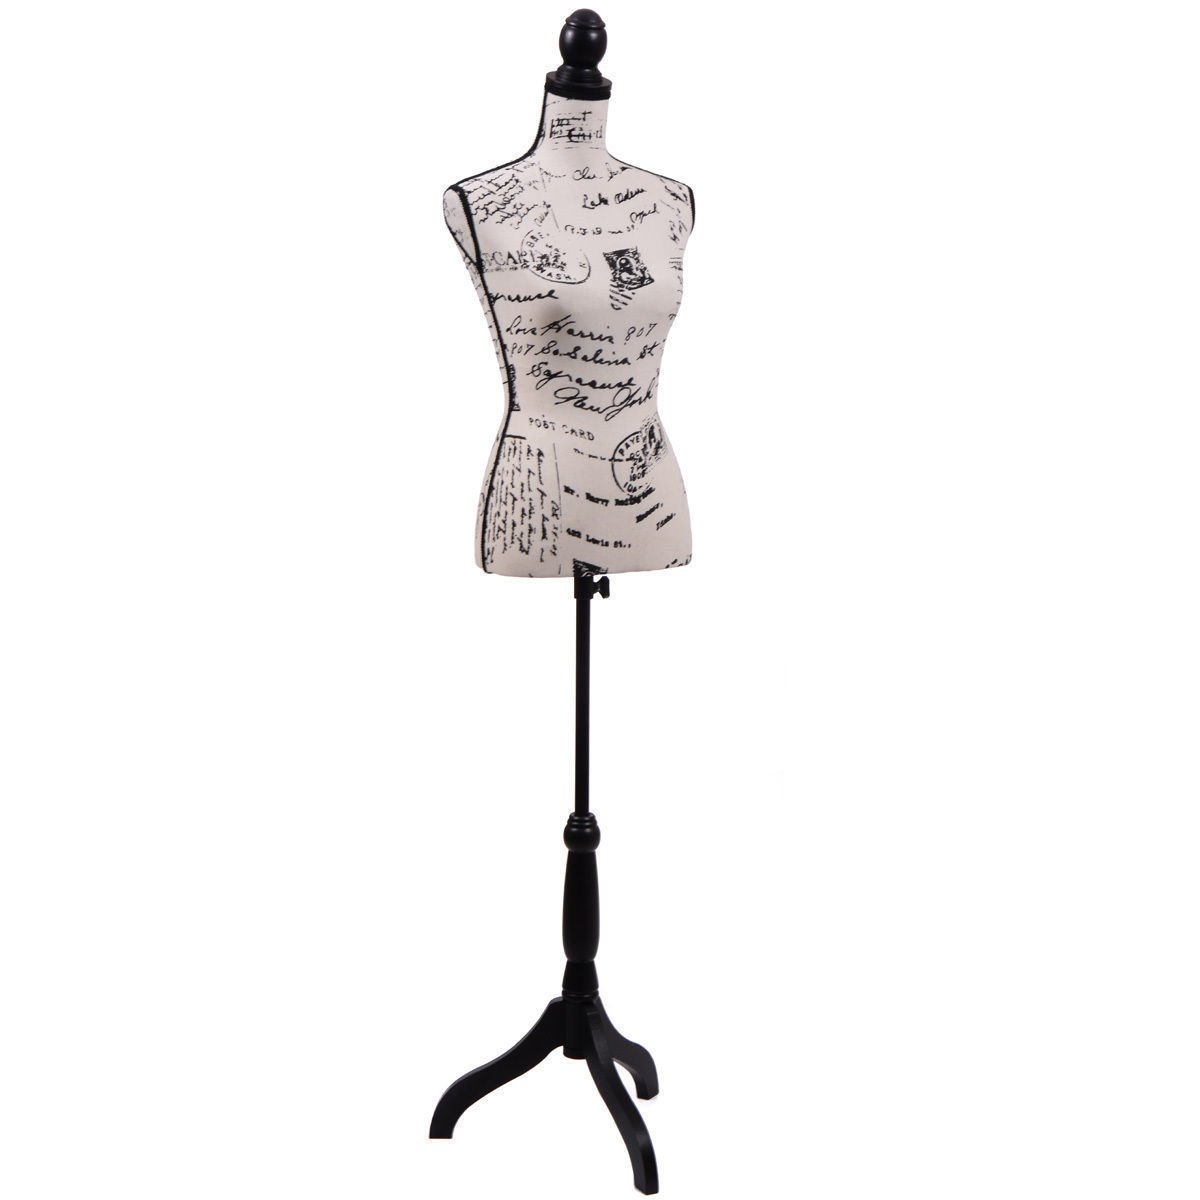 JAXPETY Female Mannequin Torso Clothing Display W/Black Tripod Stand New Beige (Printing-Beige)